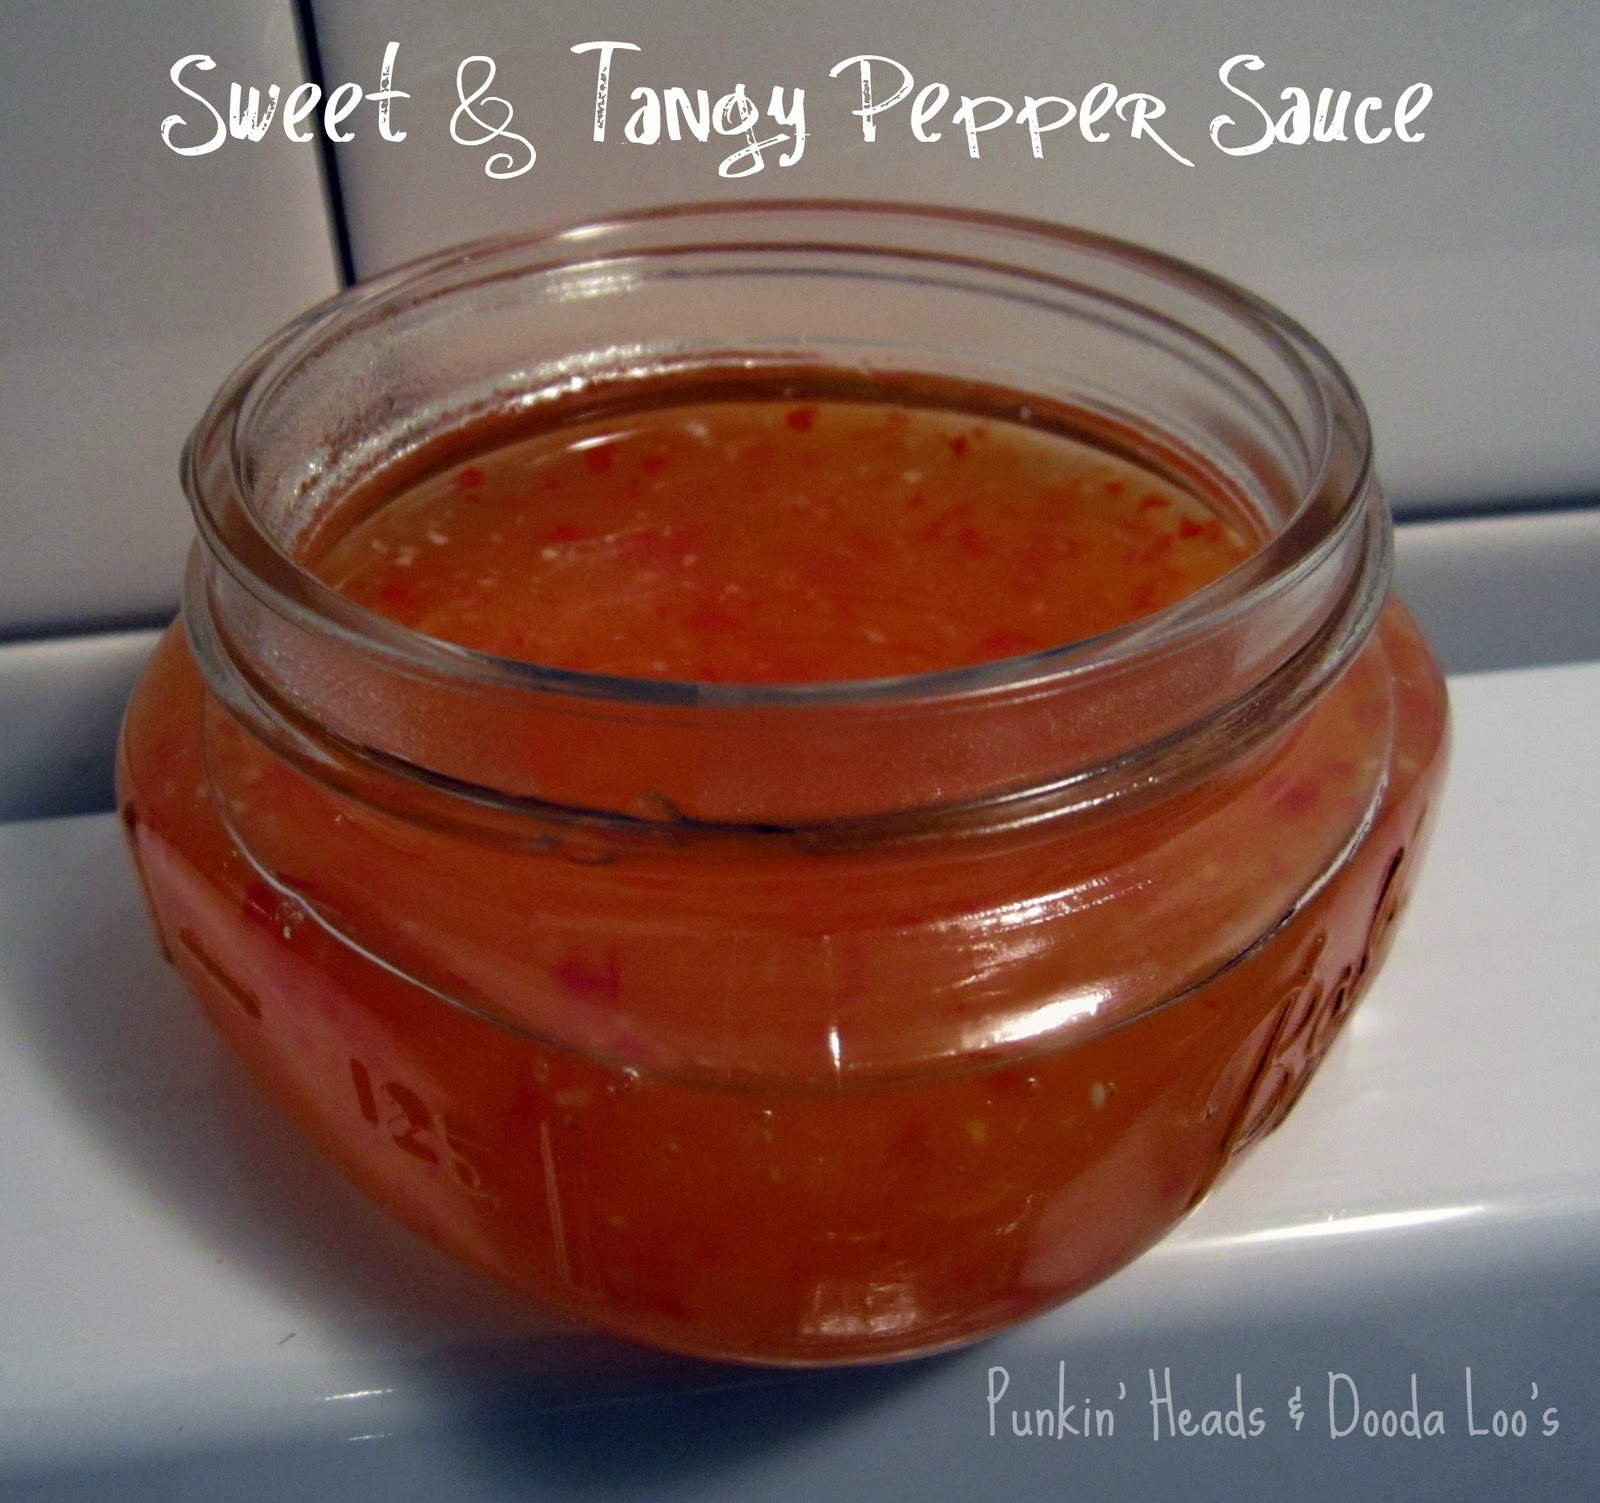 Punkin' Heads and Dooda Loo's: Sweet and Tangy Pepper Sauce